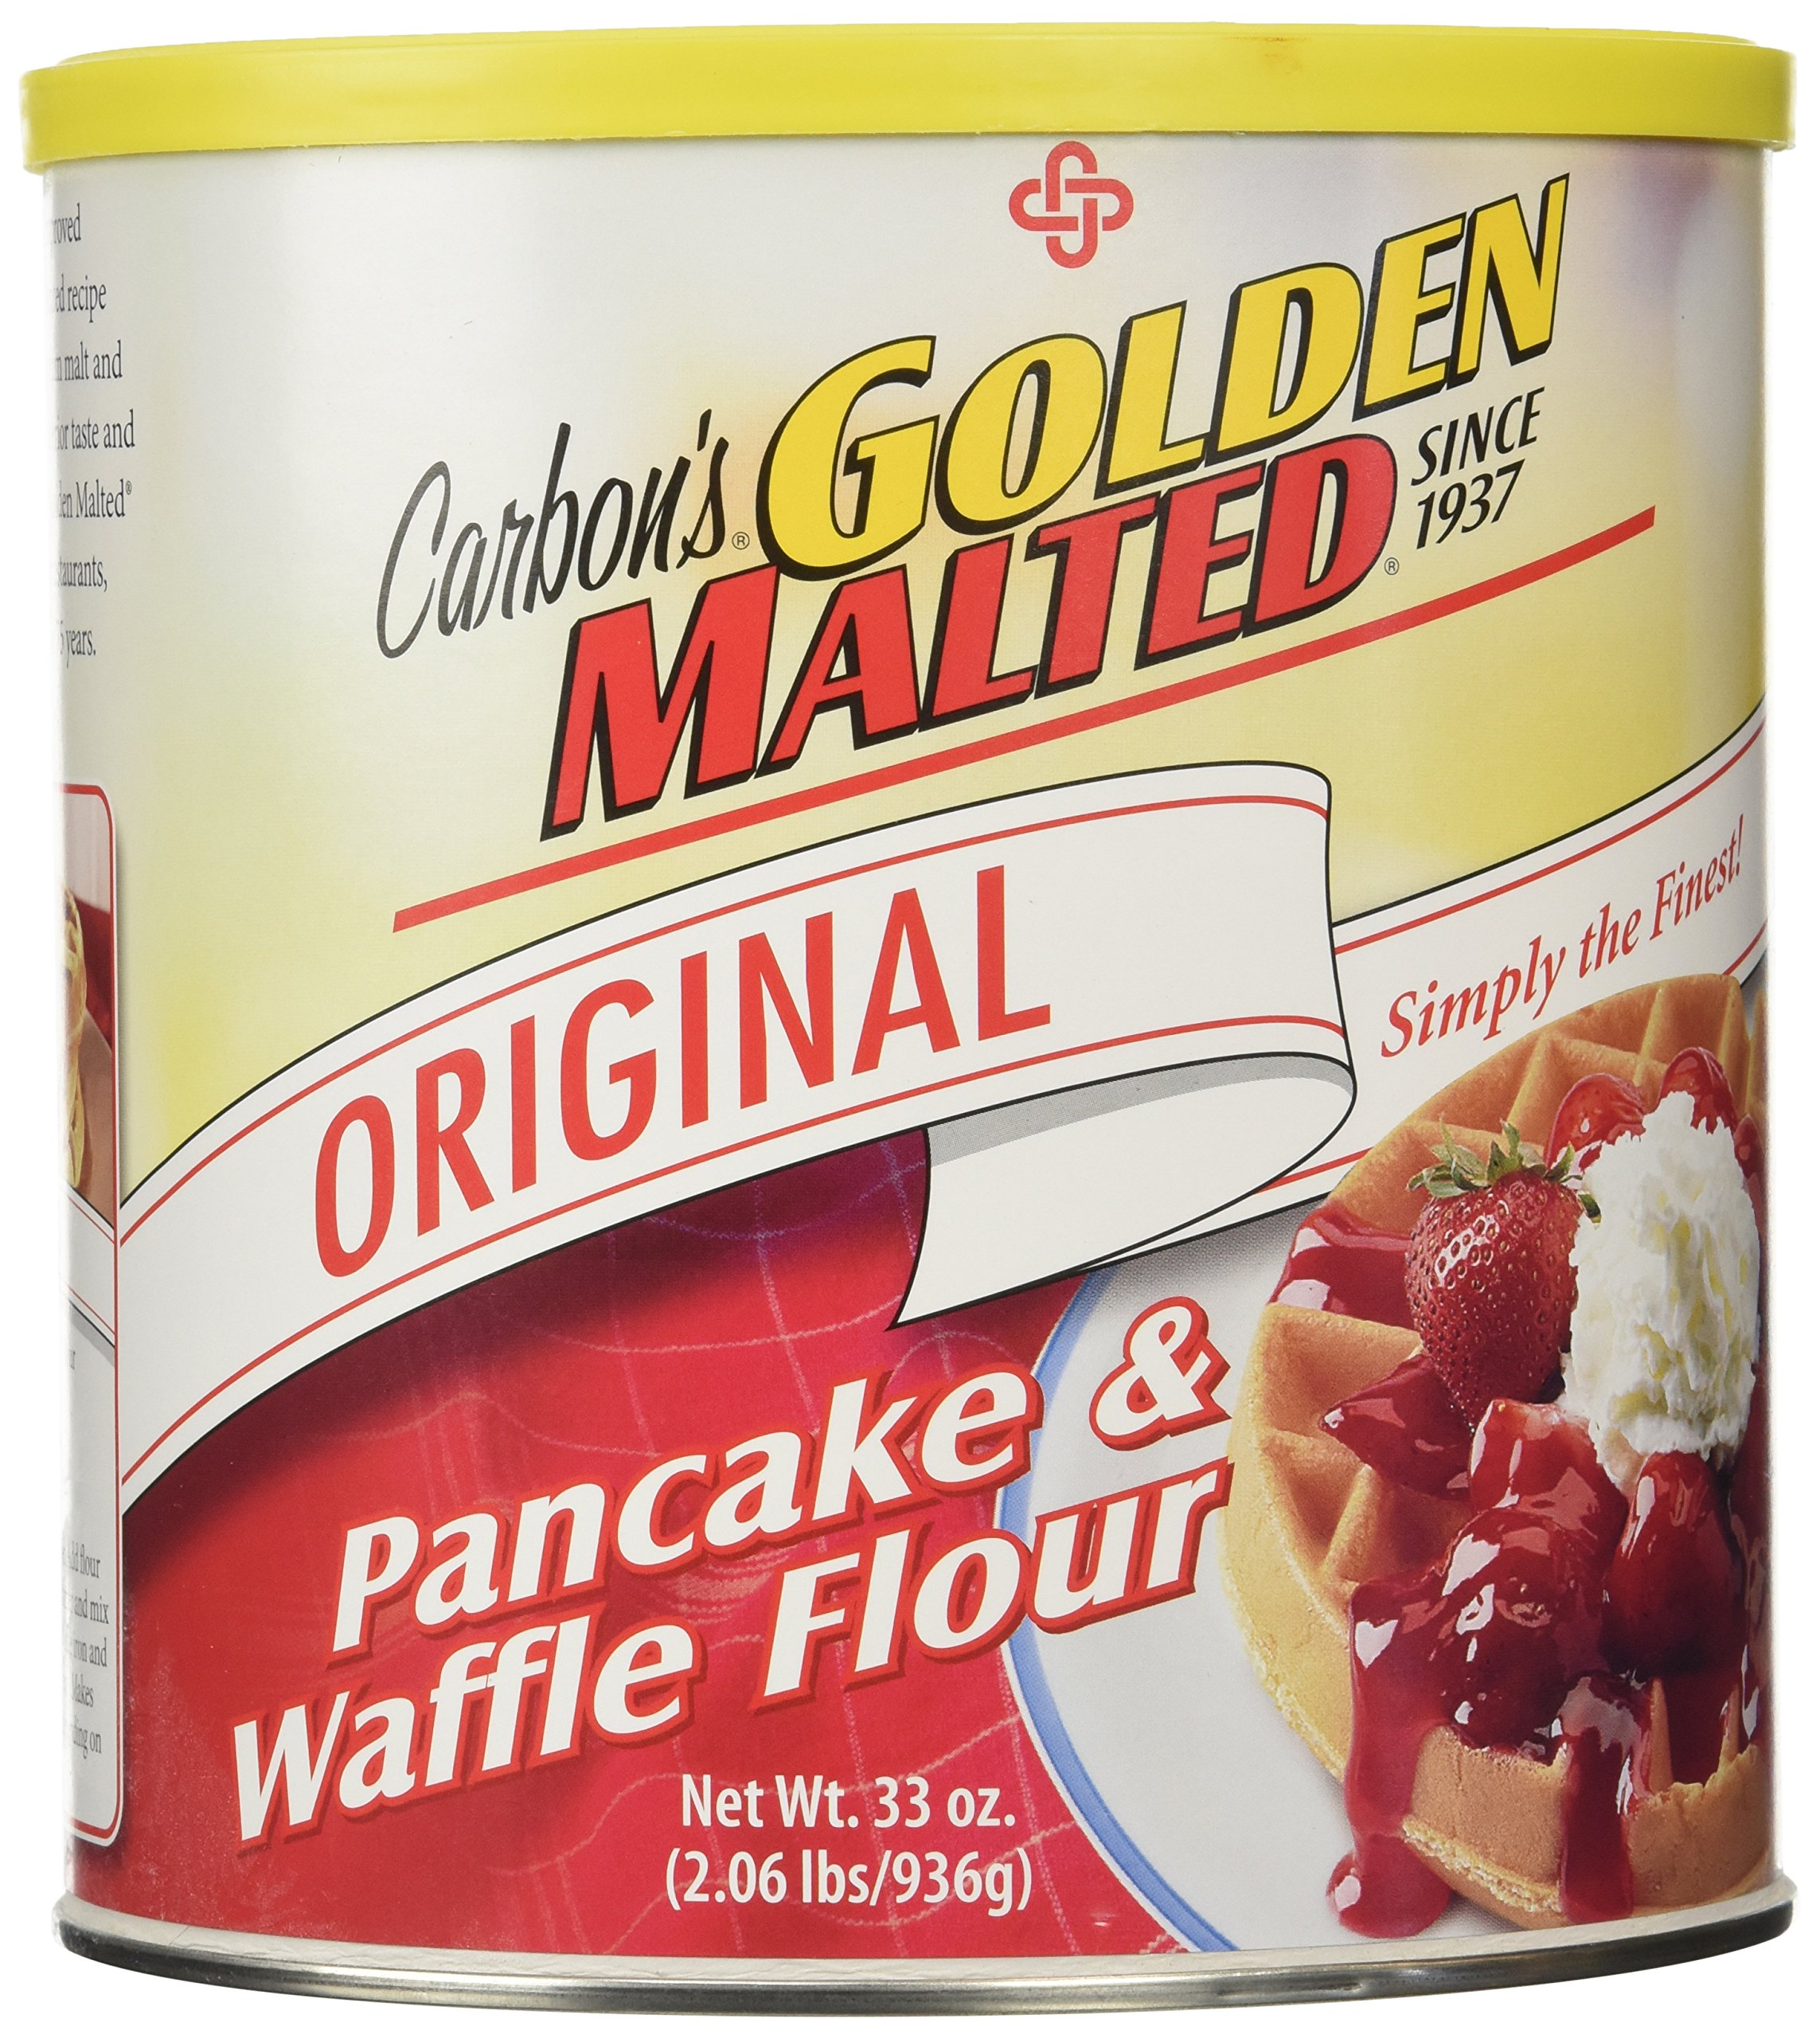 Golden Malted Waffle and Pancake Flour, Original, 33-Ounce Can by Golden Malted